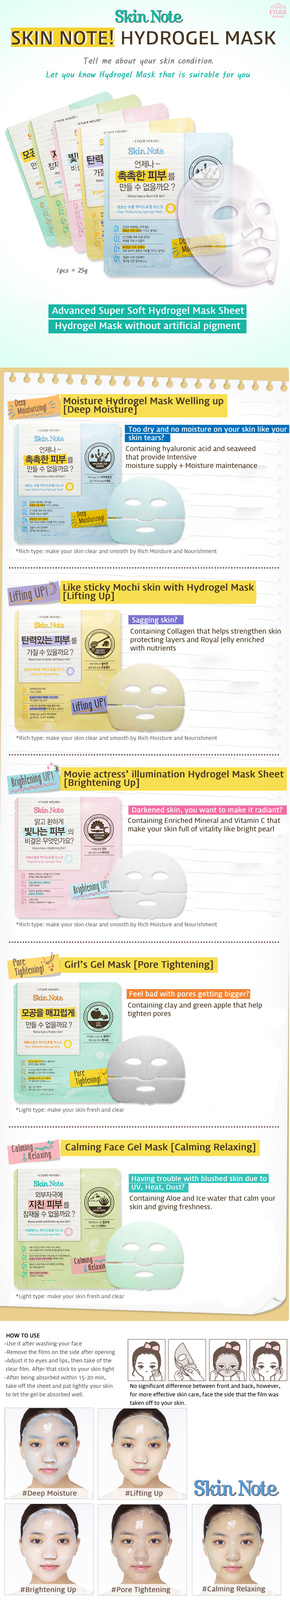 Etude House ETUDE HOUSE Skin Note Hydrogel Mask Sheet Pack 10pcs SET #Deep Moist